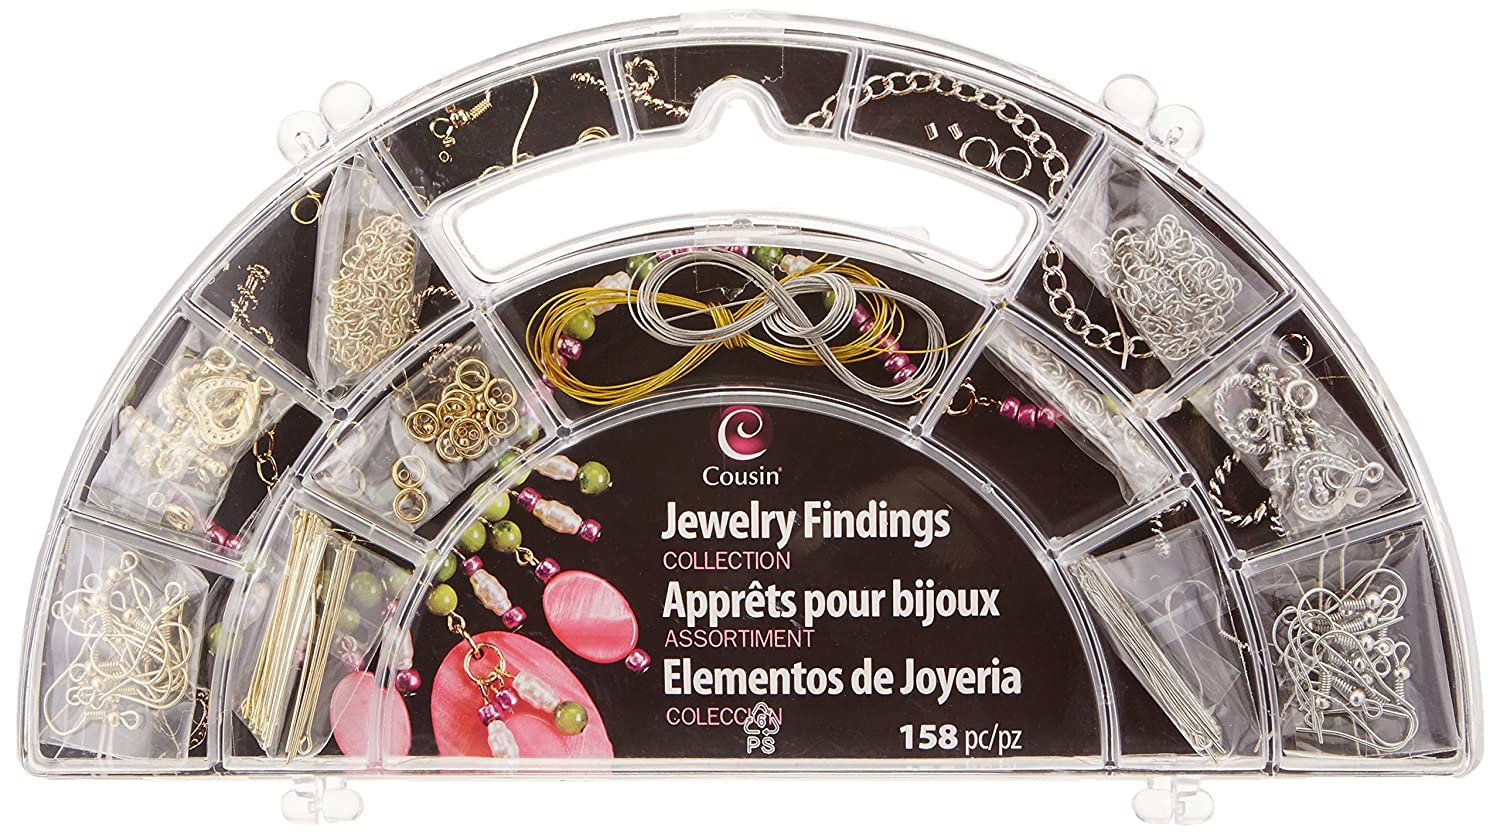 Cousin Precious Accents Jewelry Findings Collection 158/Pkg, Silver and Gold 13594